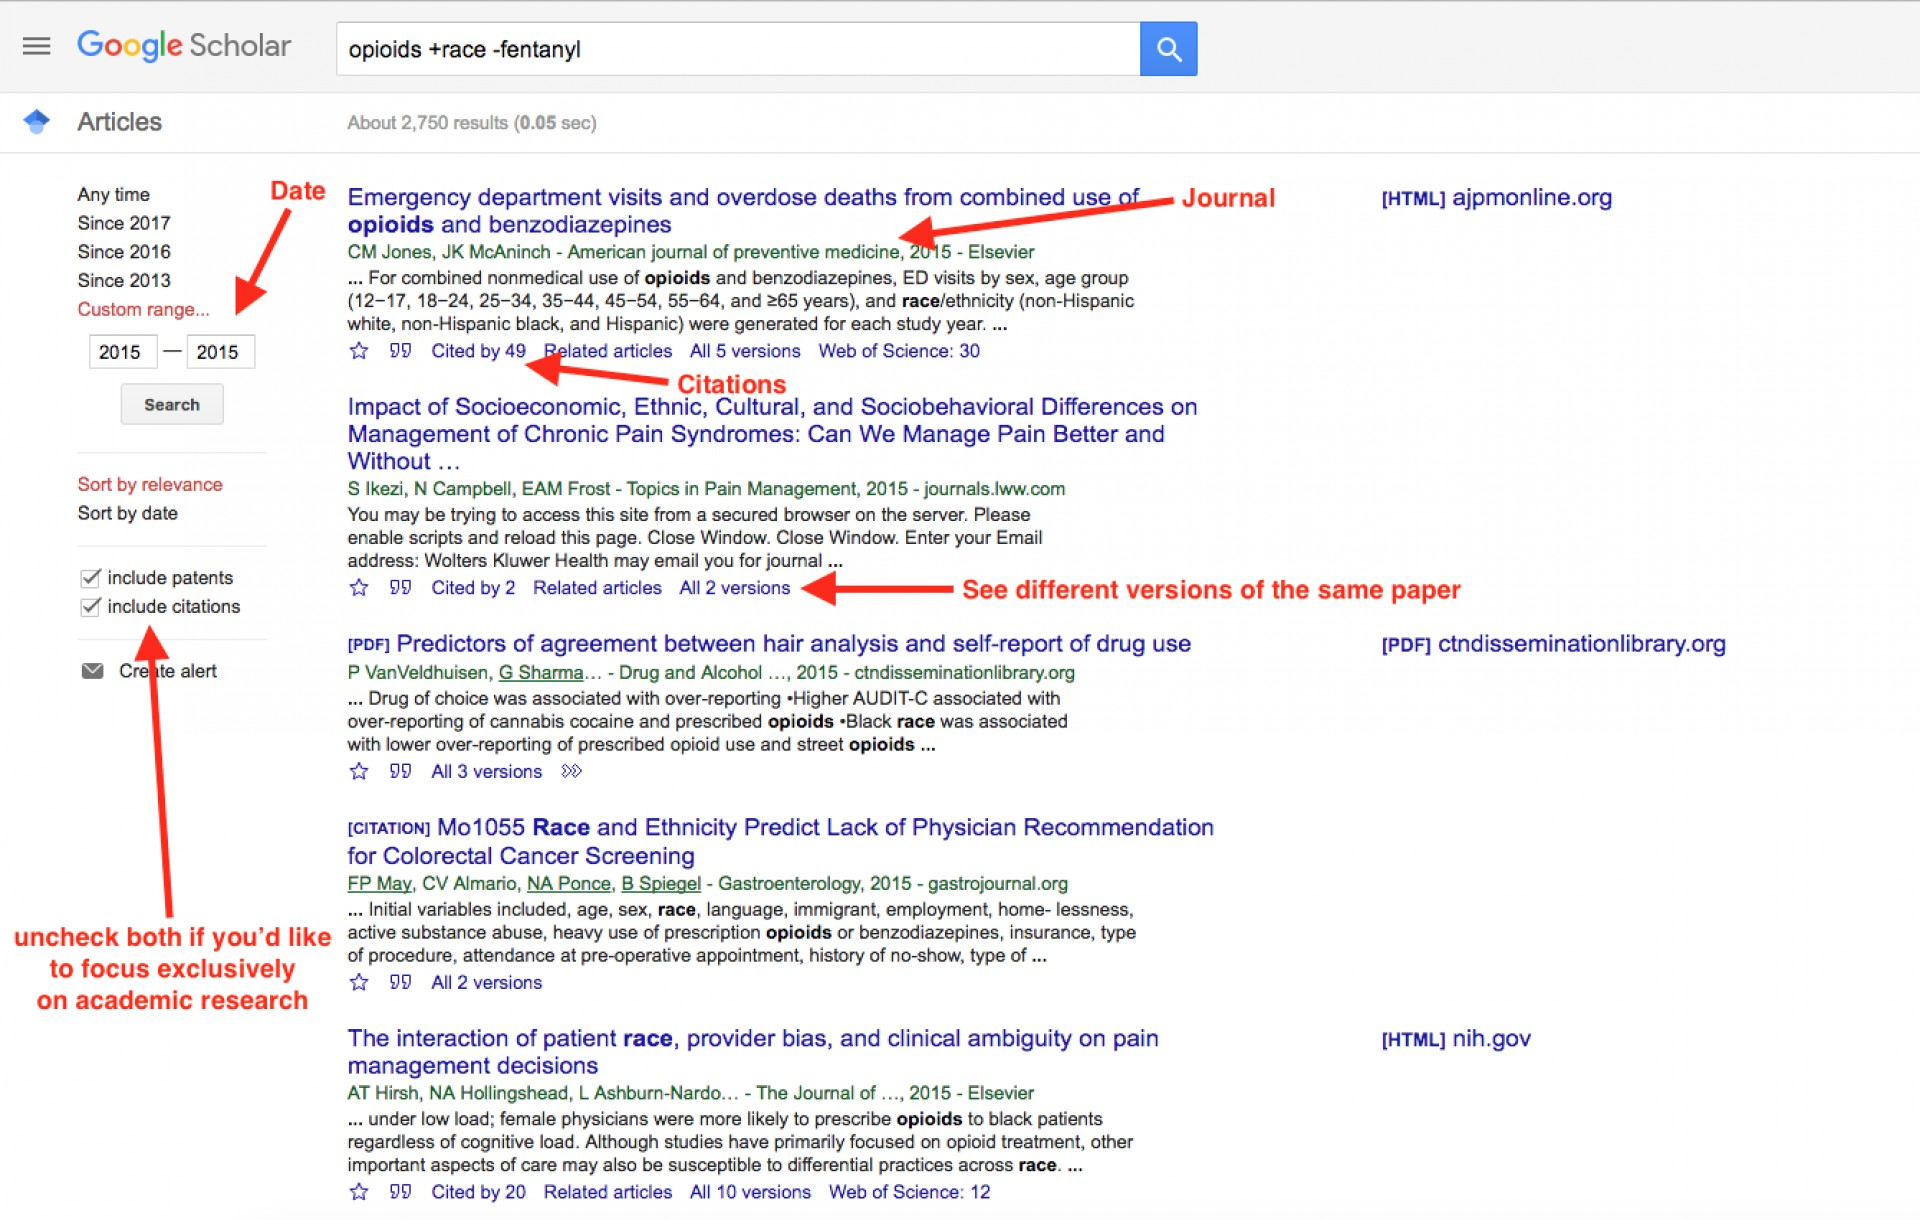 014 Research Paper Google Papers Screen Shot At Fearsome Earth Mapreduce Deepmind 1920